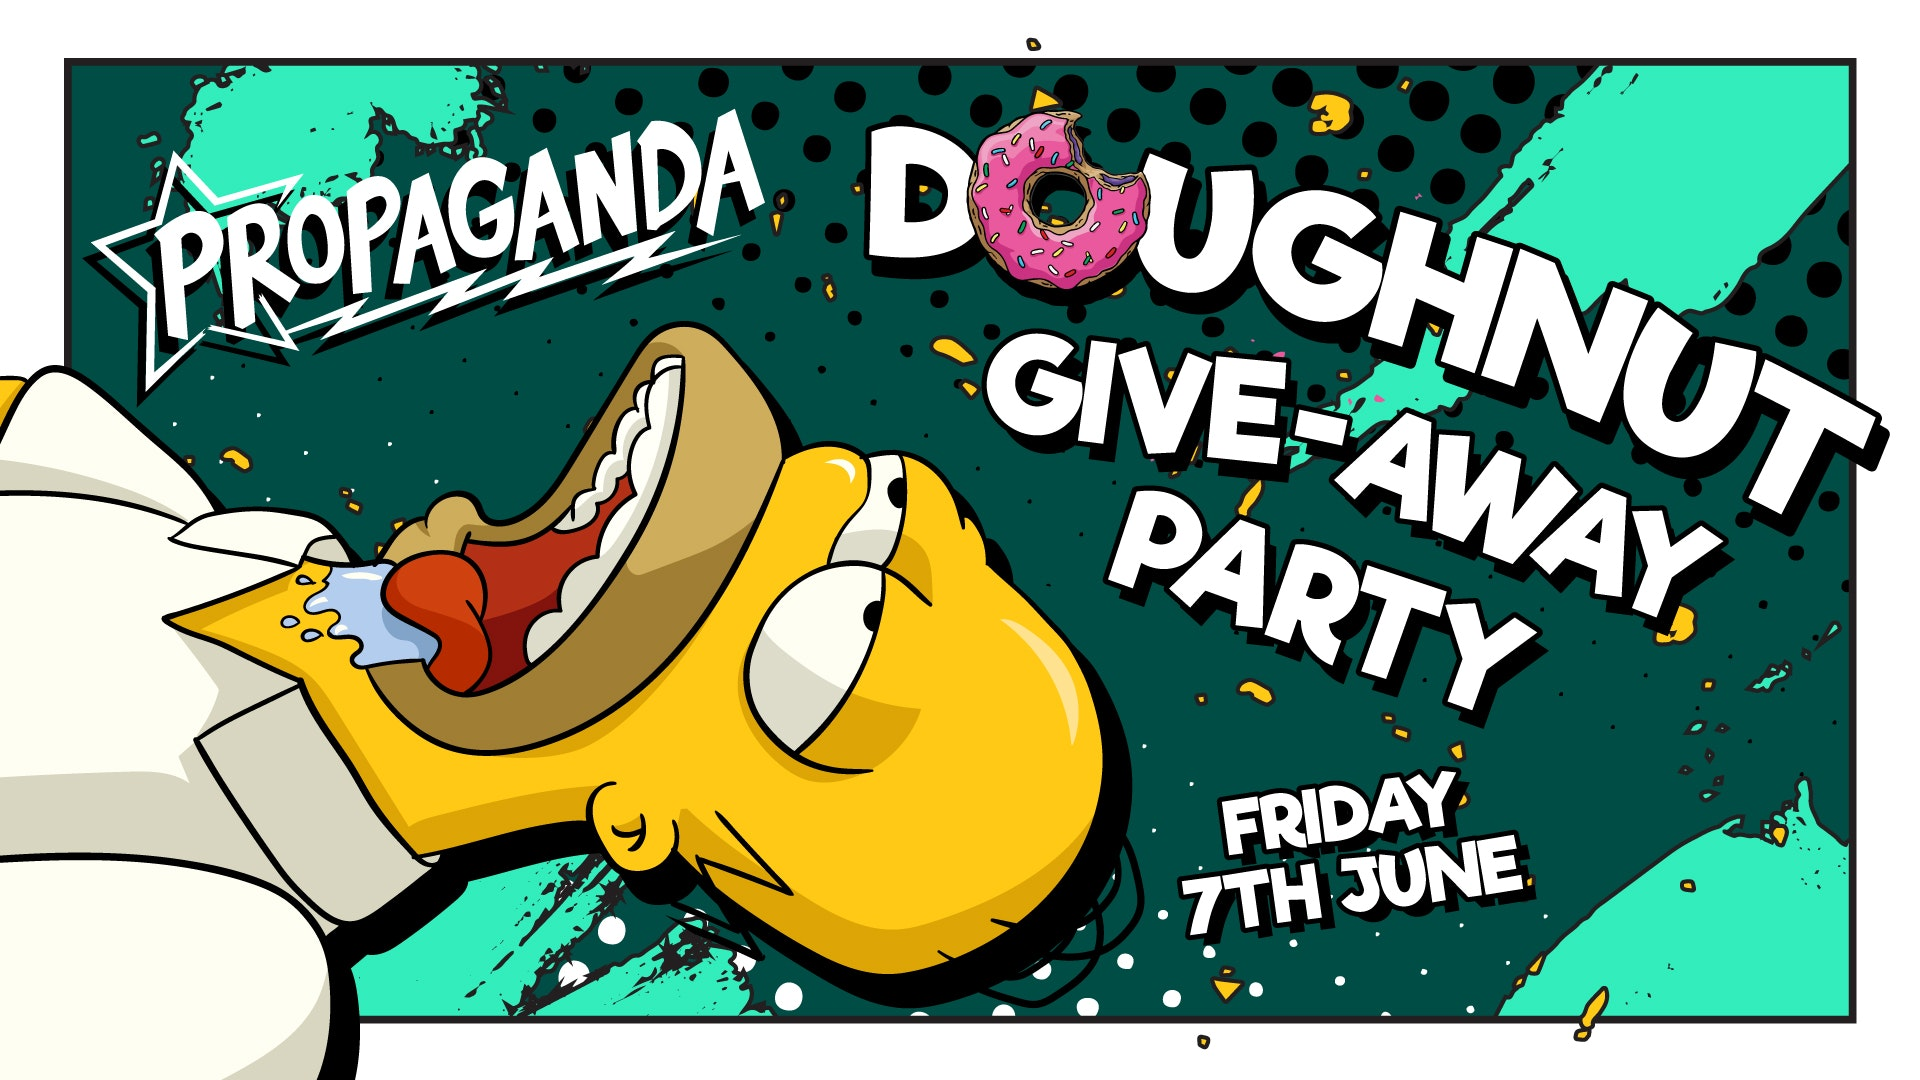 Propaganda Norwich – Doughnut Party